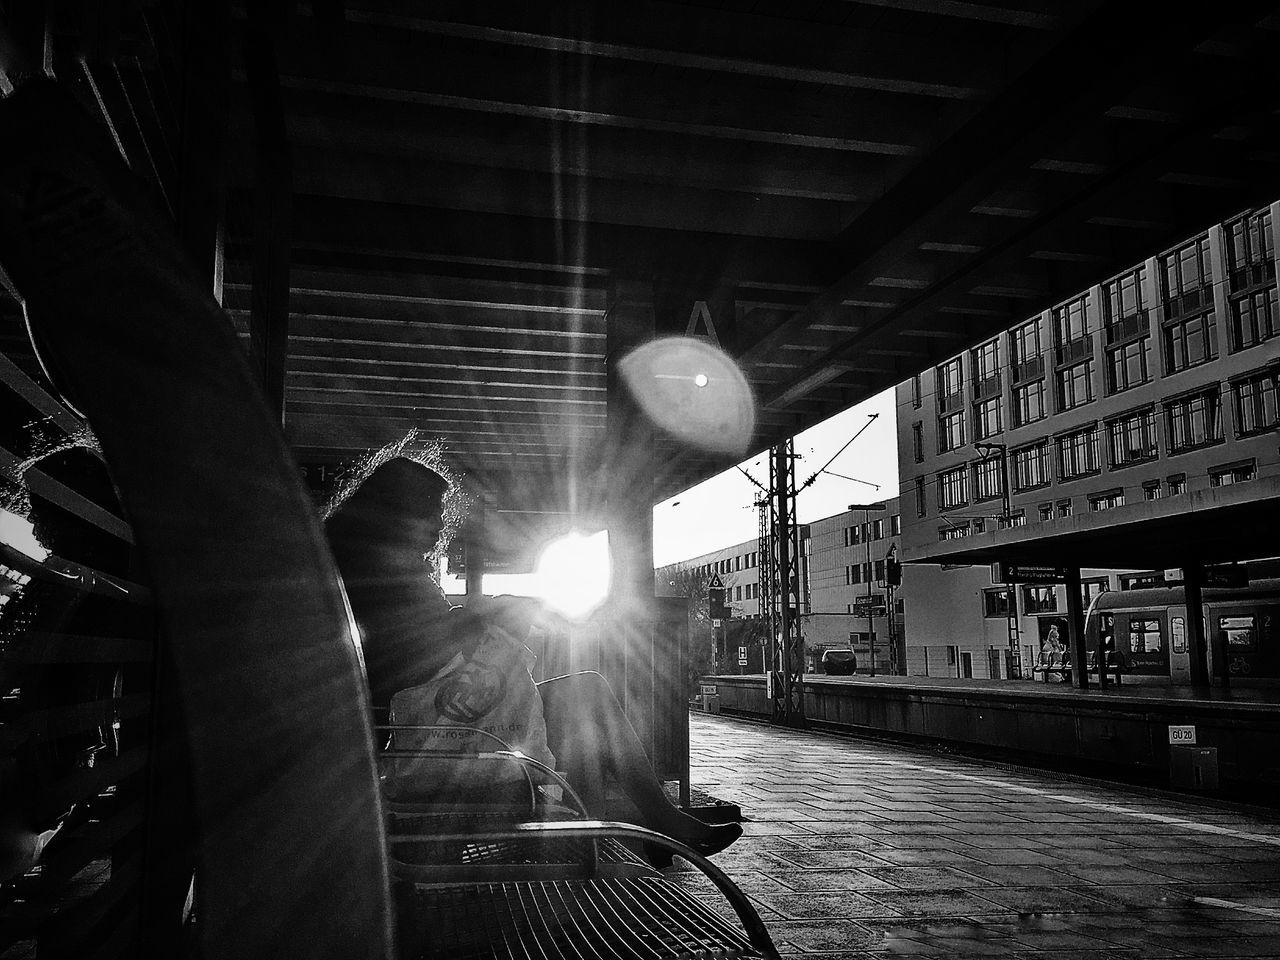 transportation, real people, lens flare, public transportation, rail transportation, built structure, architecture, building exterior, outdoors, men, day, one person, people